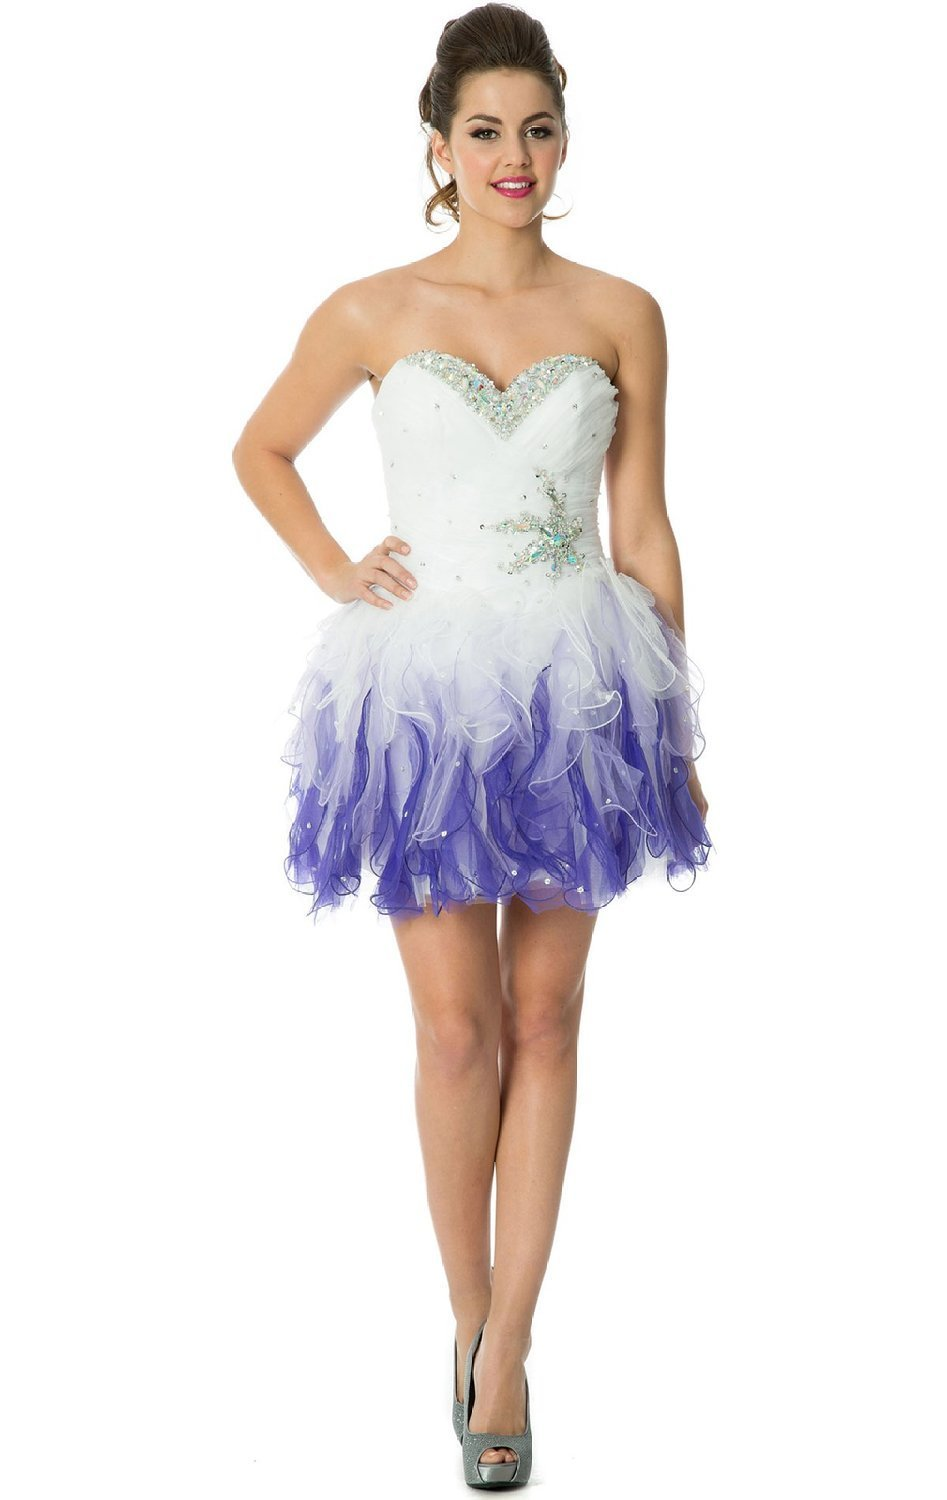 com: EnjoyBuys 2015 Crystal Ruffles Short Prom Dress Junior ...